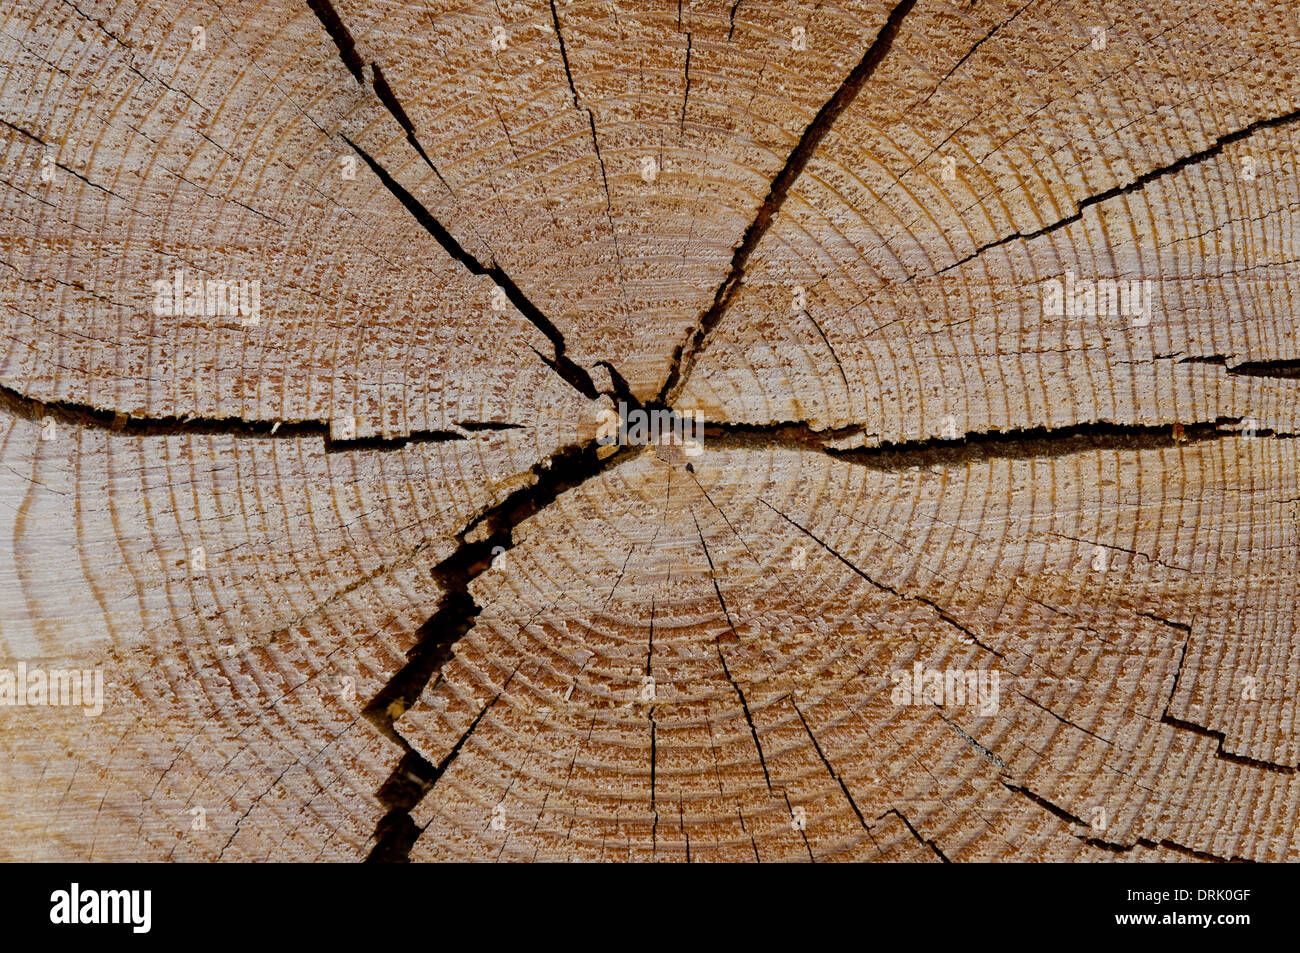 Cross section of ponderosa pine tree log showing growth rings. - Stock Image